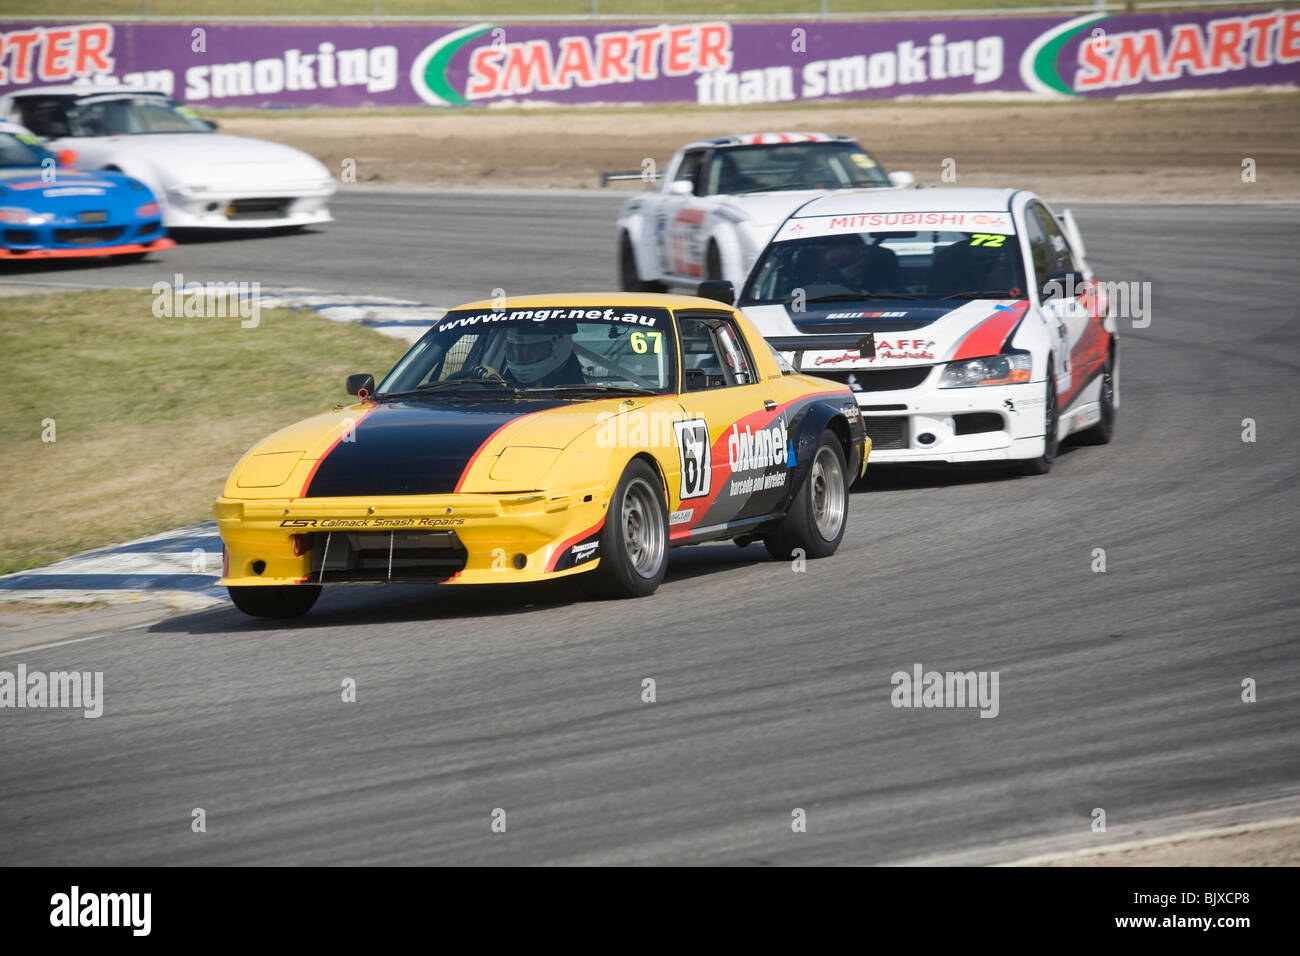 Mazda RX7 Race Car Leading The Pack Around A Corner   Stock Image